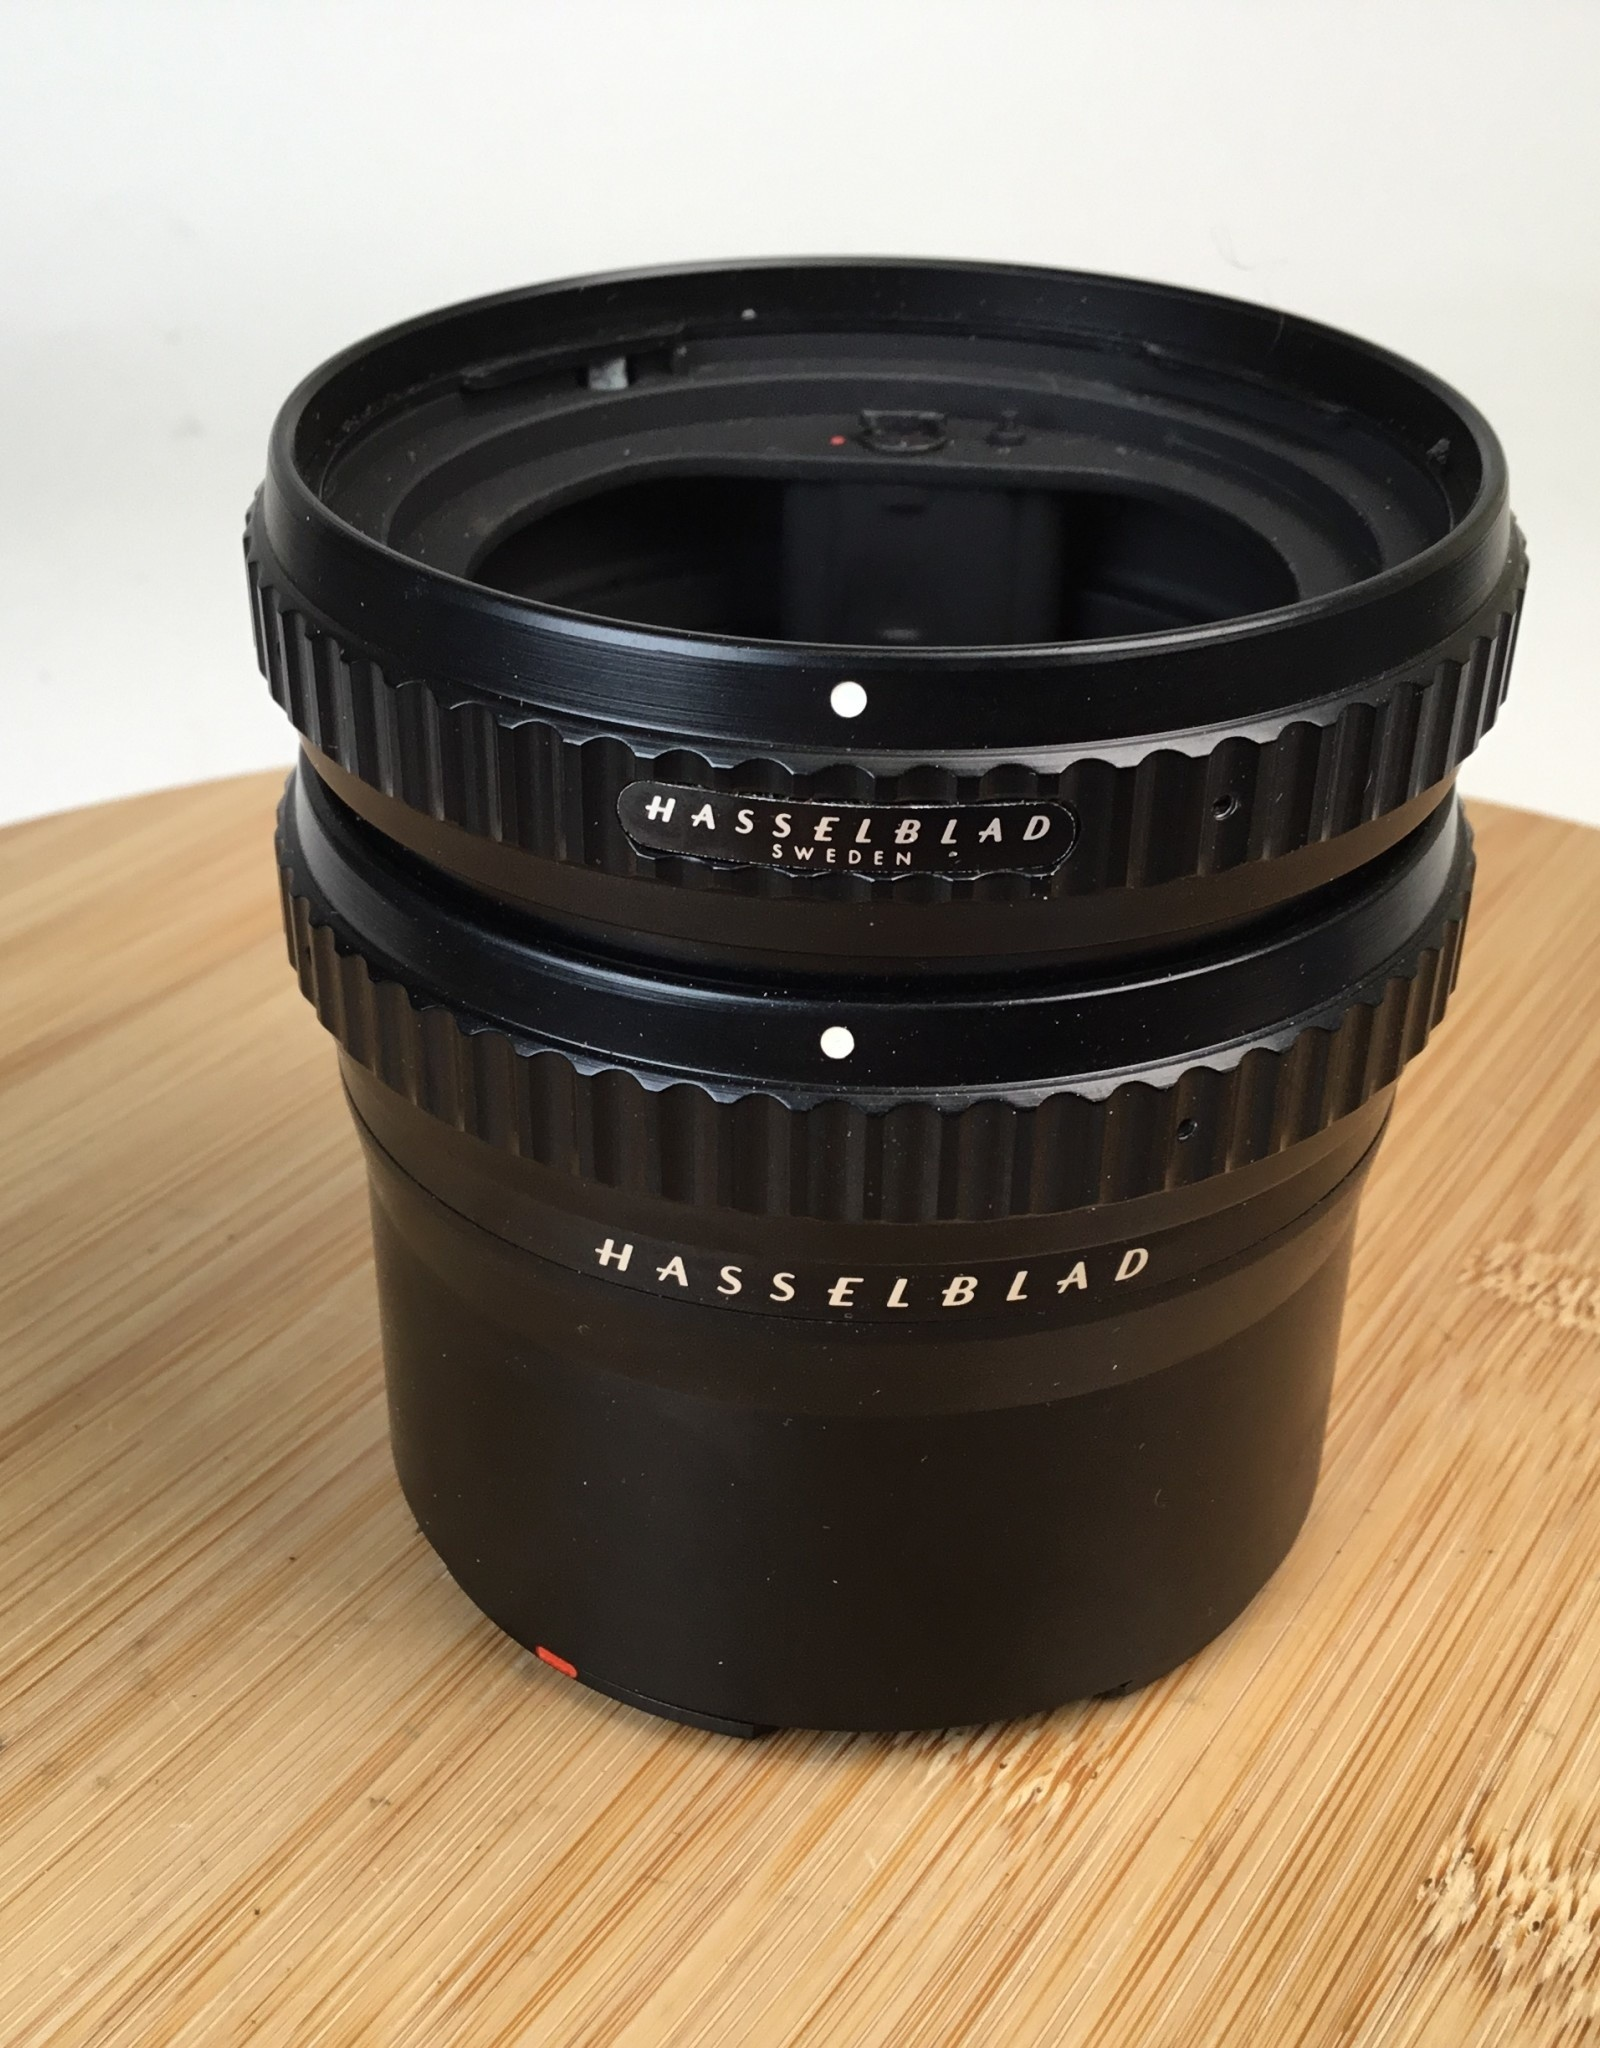 hasselblad Hasselblad Extension Tubes 55 and 21 Used EX